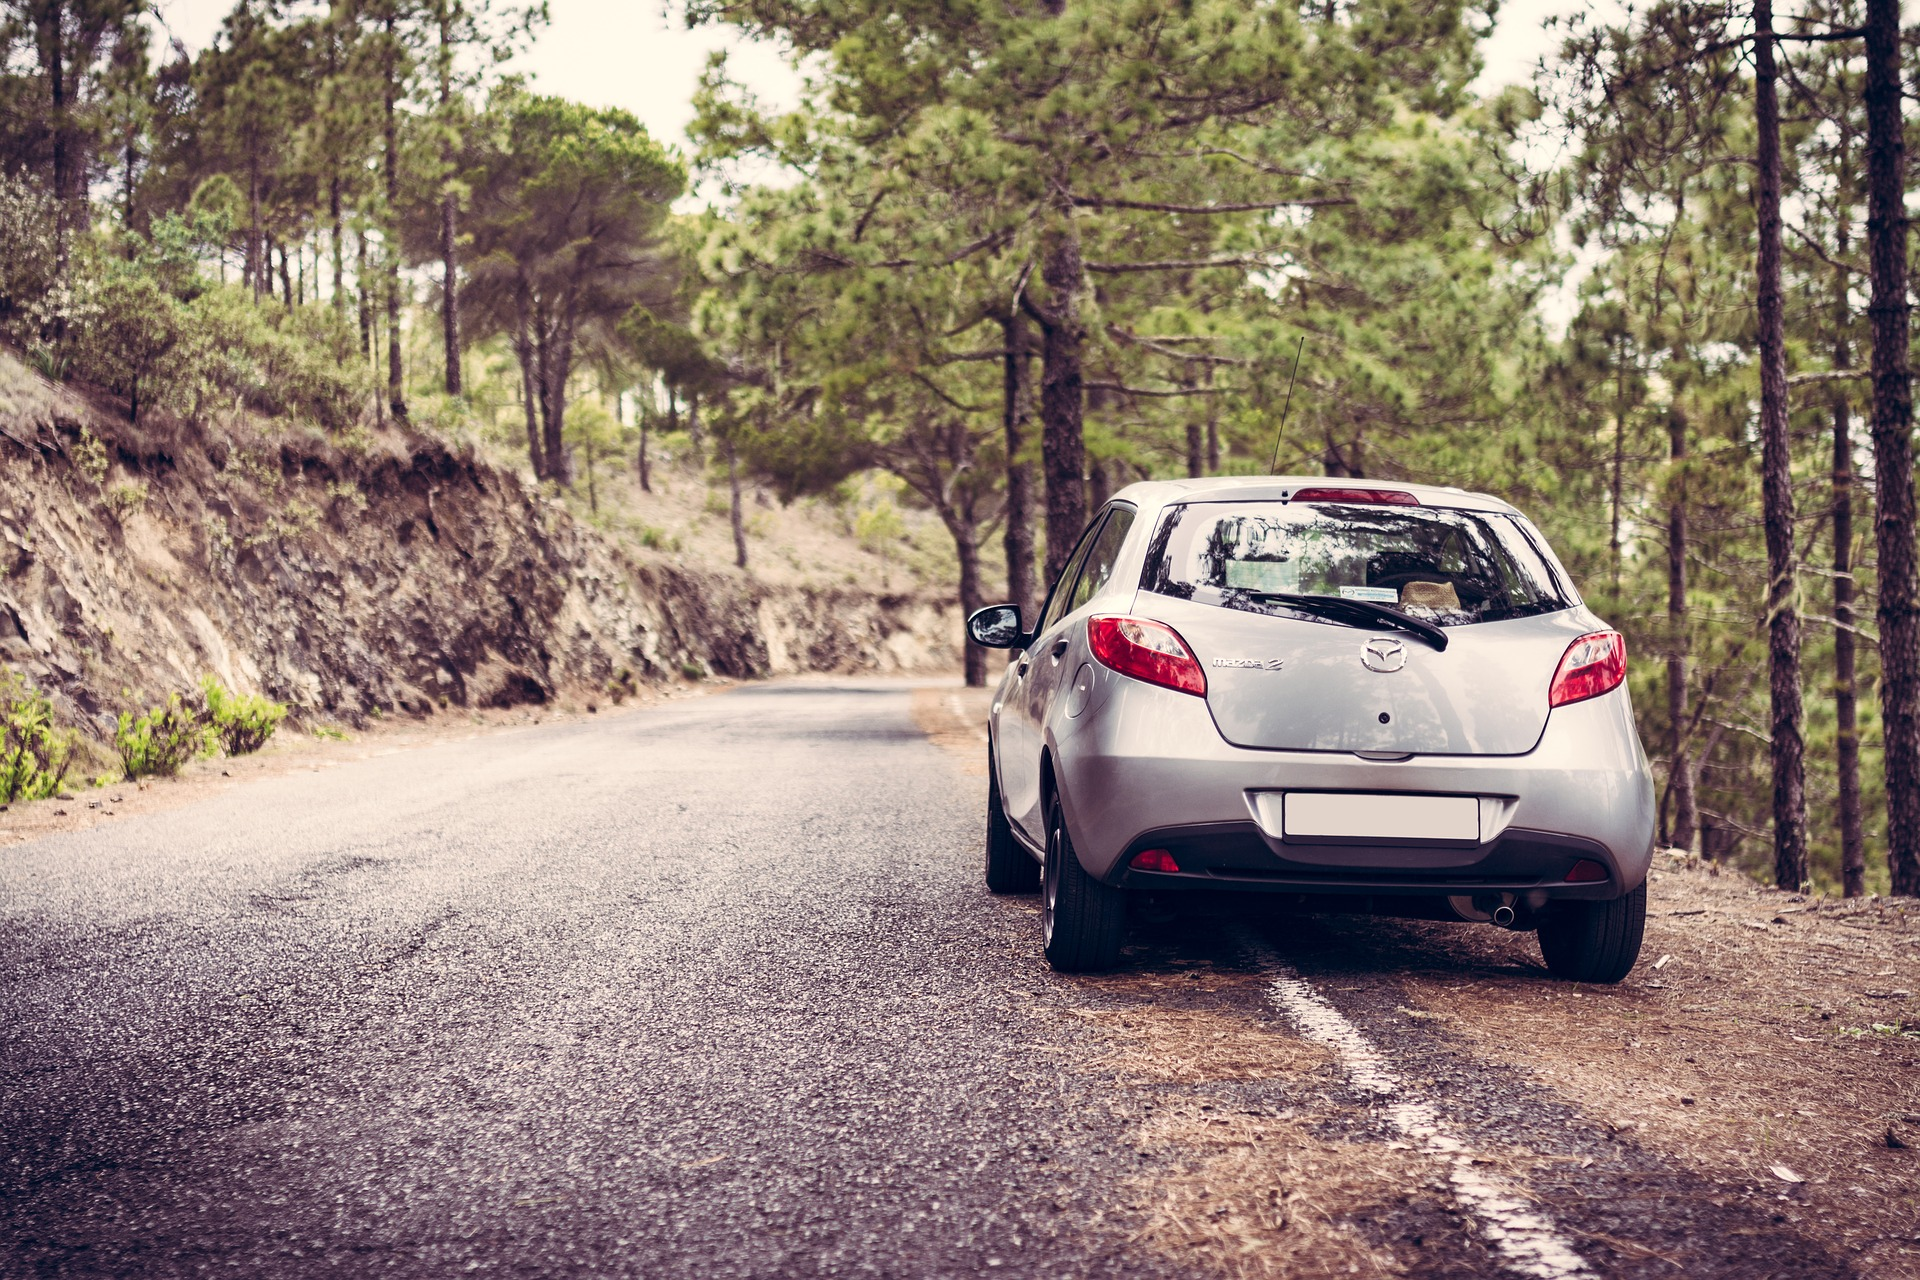 Pre- Driving Assessments -